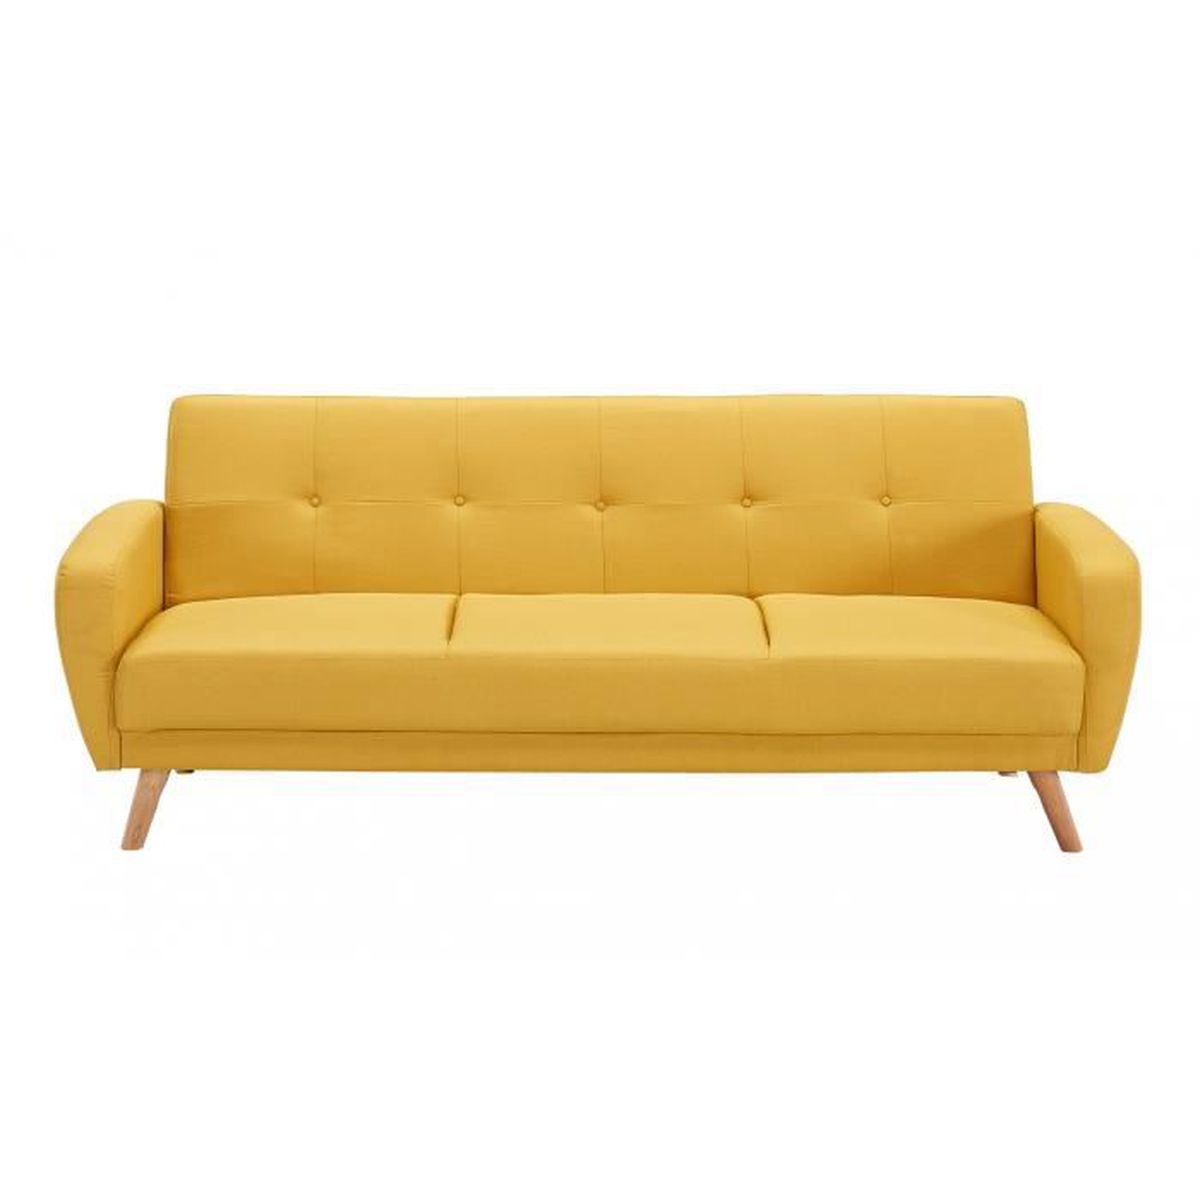 Canap 3 Places Scandinave Convertible Jaune Achat